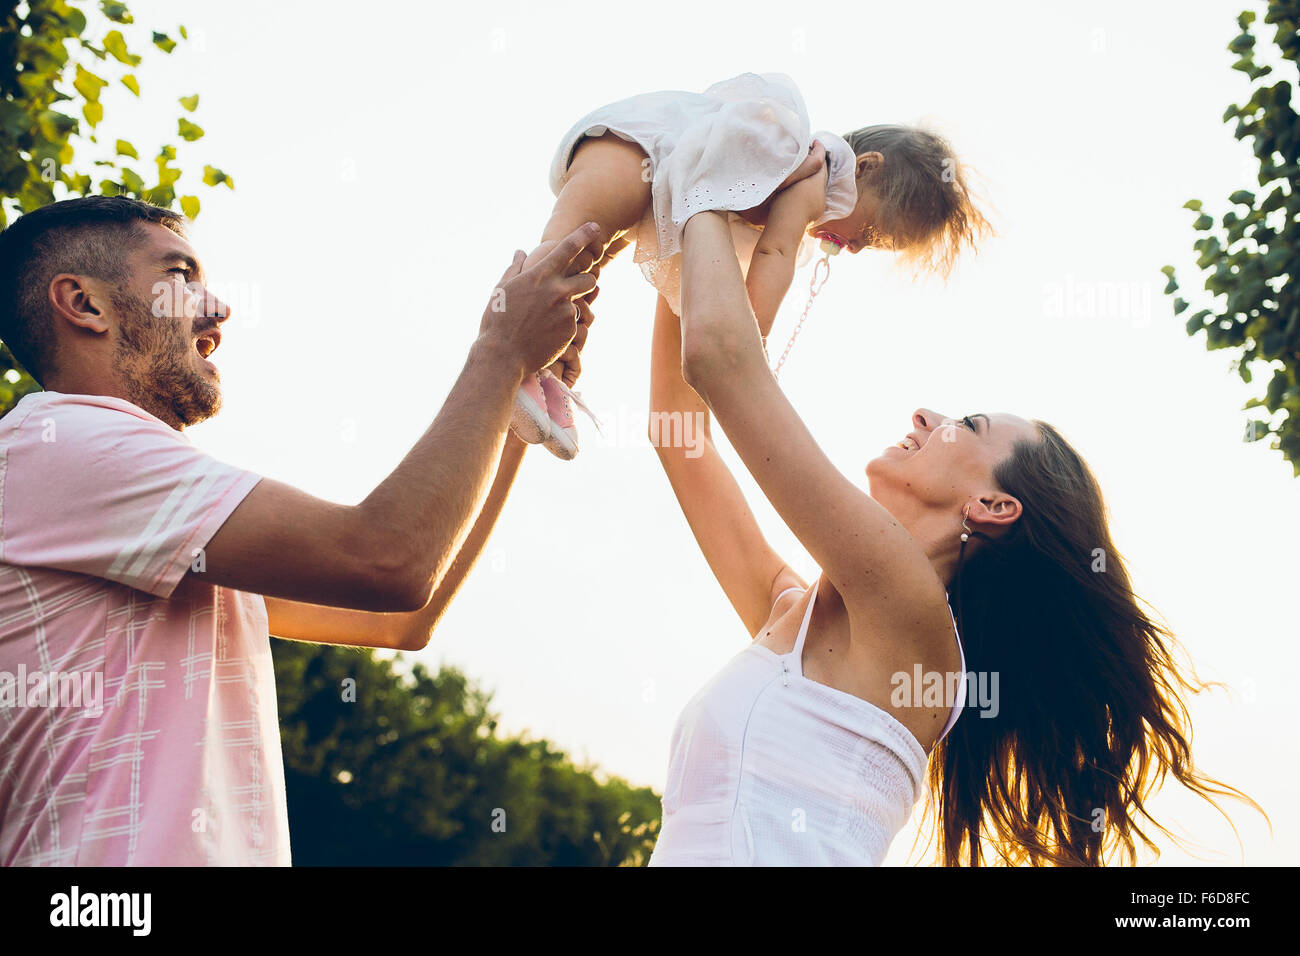 Parents and kid spending time - Stock Image